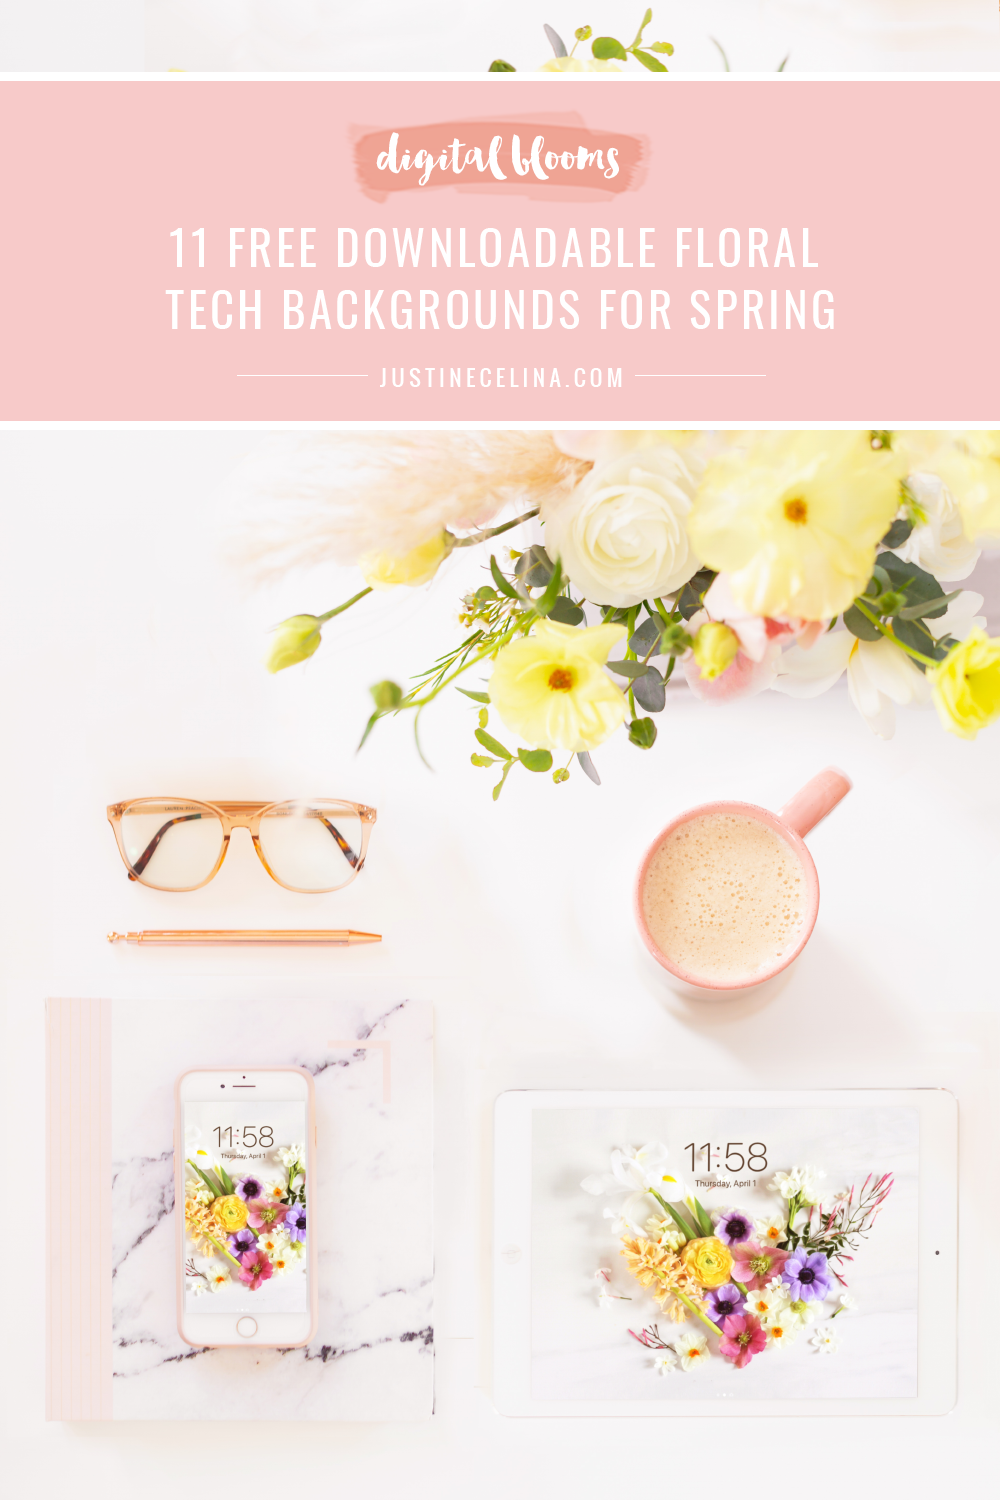 Free Spring Flower Wallpapers | 11 Free Downloadable Floral Tech Backgrounds for April | Feminine WFH set up with an iPhone and iPad featuring JustineCelina's spring floral heart wallpaper, a blush pink marble journal and planner, a pampas grass spring arrangement and latte on a white desk | Female Entrepreneur Digital Wallpapers | The Best of Justine Celina's April Digital Blooms | Best Spring Computer Backgrounds | Spring Desktop Wallpaper | March Wallpaper iPhone // JustineCelina.com